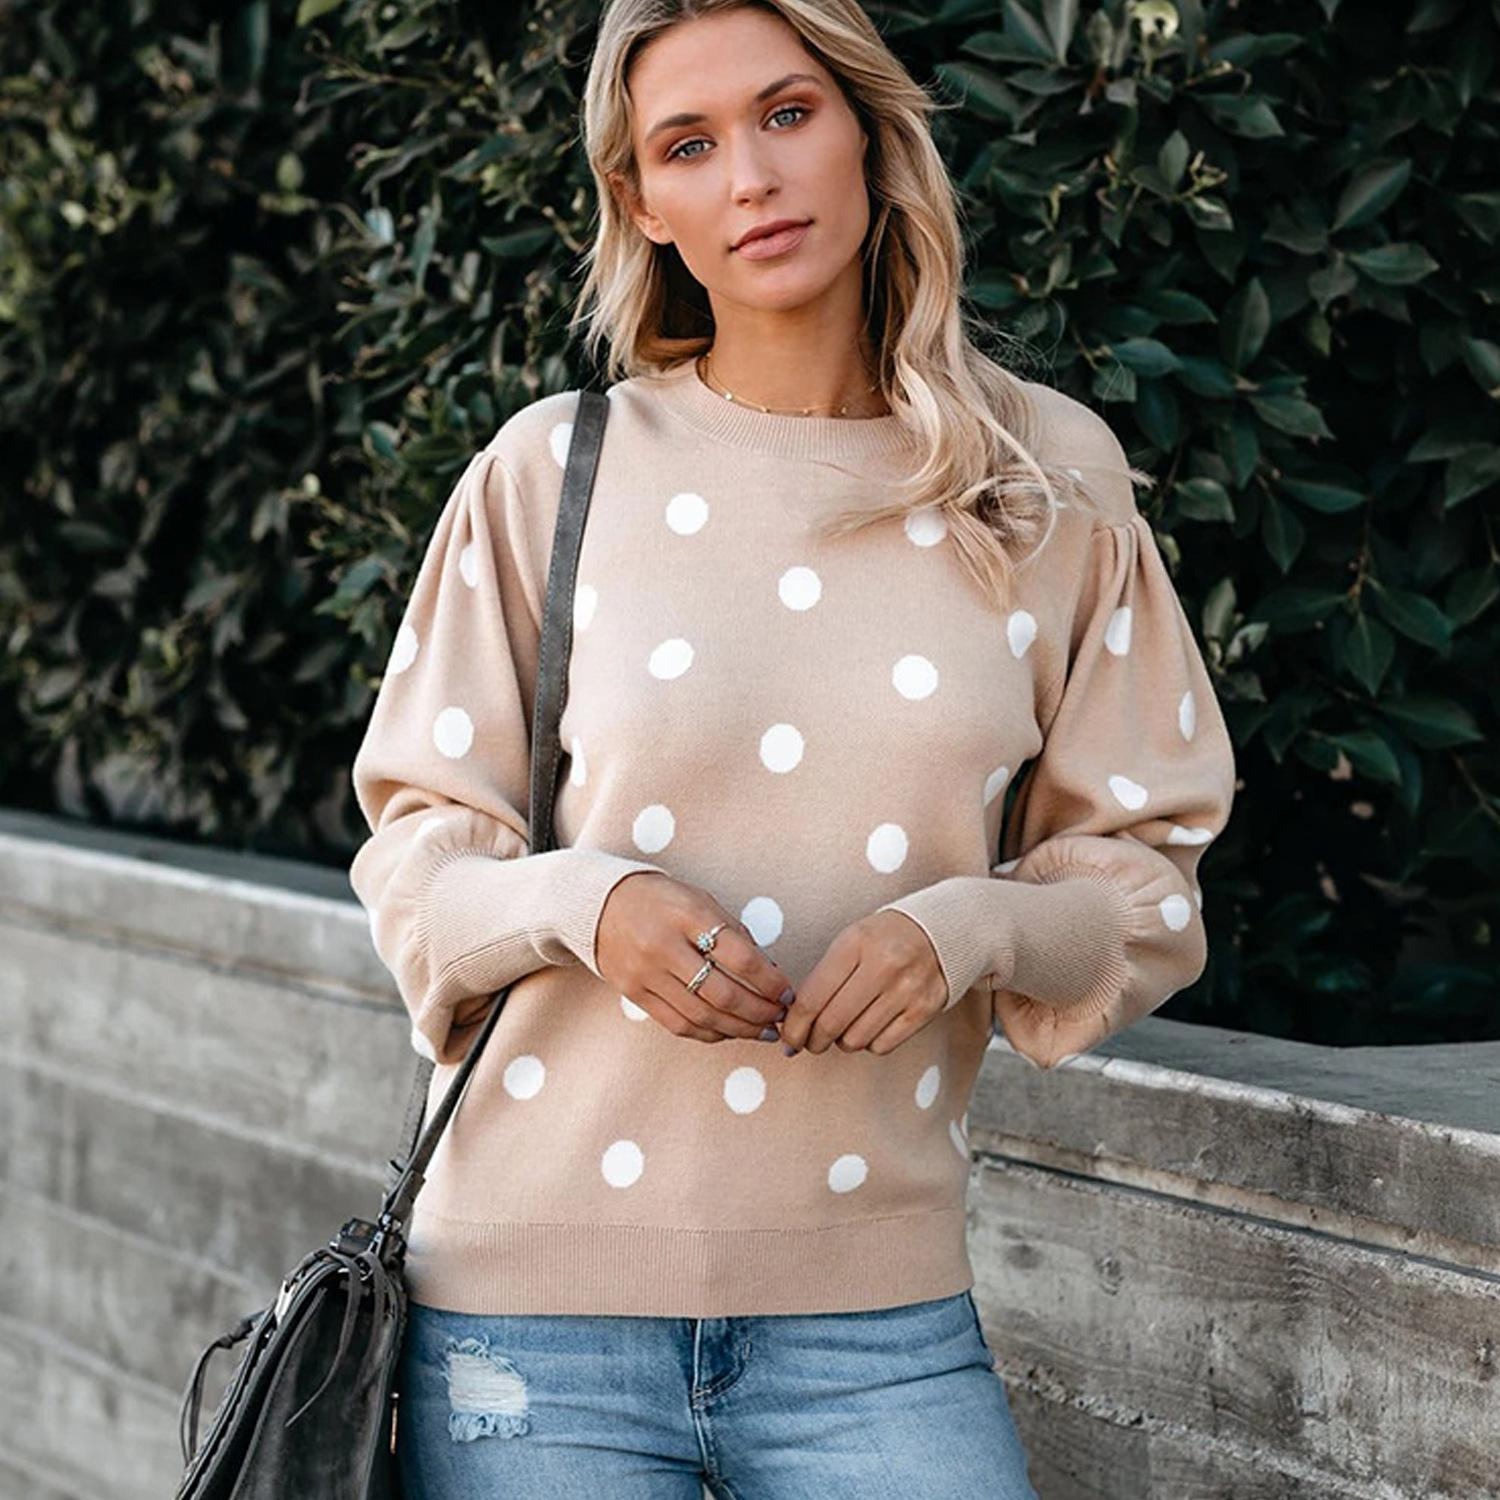 2020 Women's Pullover Crew Neck Sweater Female Casual Long Sleeve Knitted Sweater Women Polka Dot Print Sweater